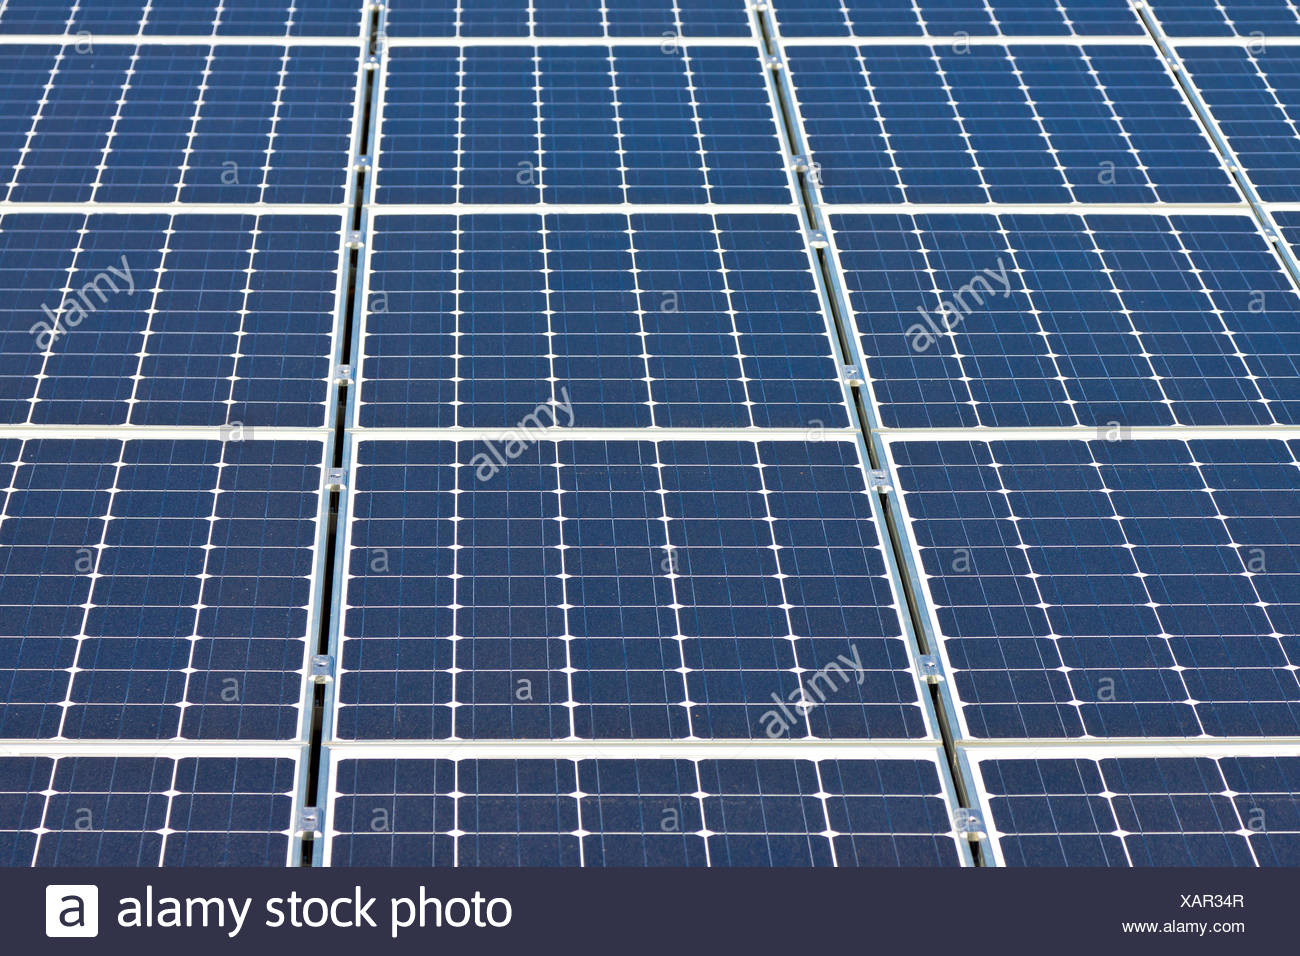 Solar panels on a house roof, photovoltaic - Stock Image